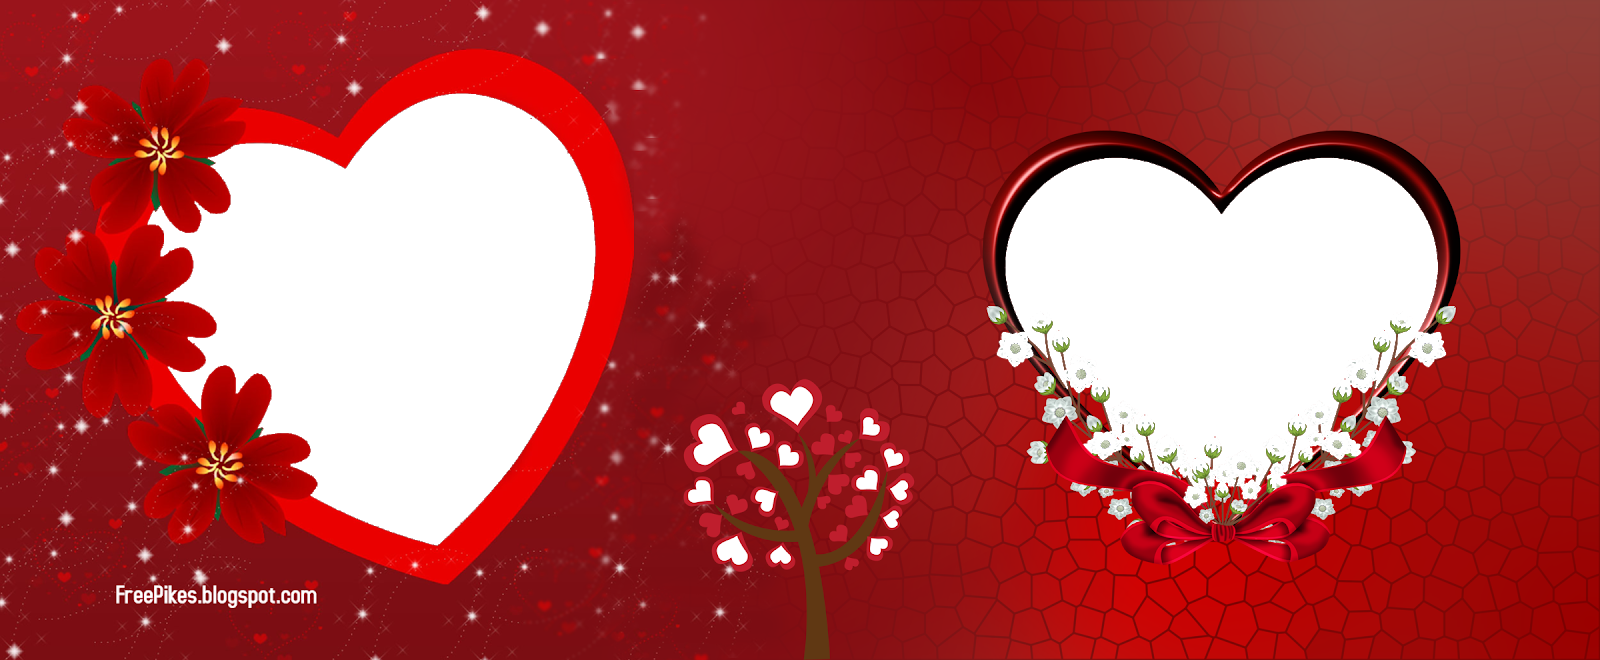 two heart png two heart mug design background heart 4490396 vippng two heart png two heart mug design